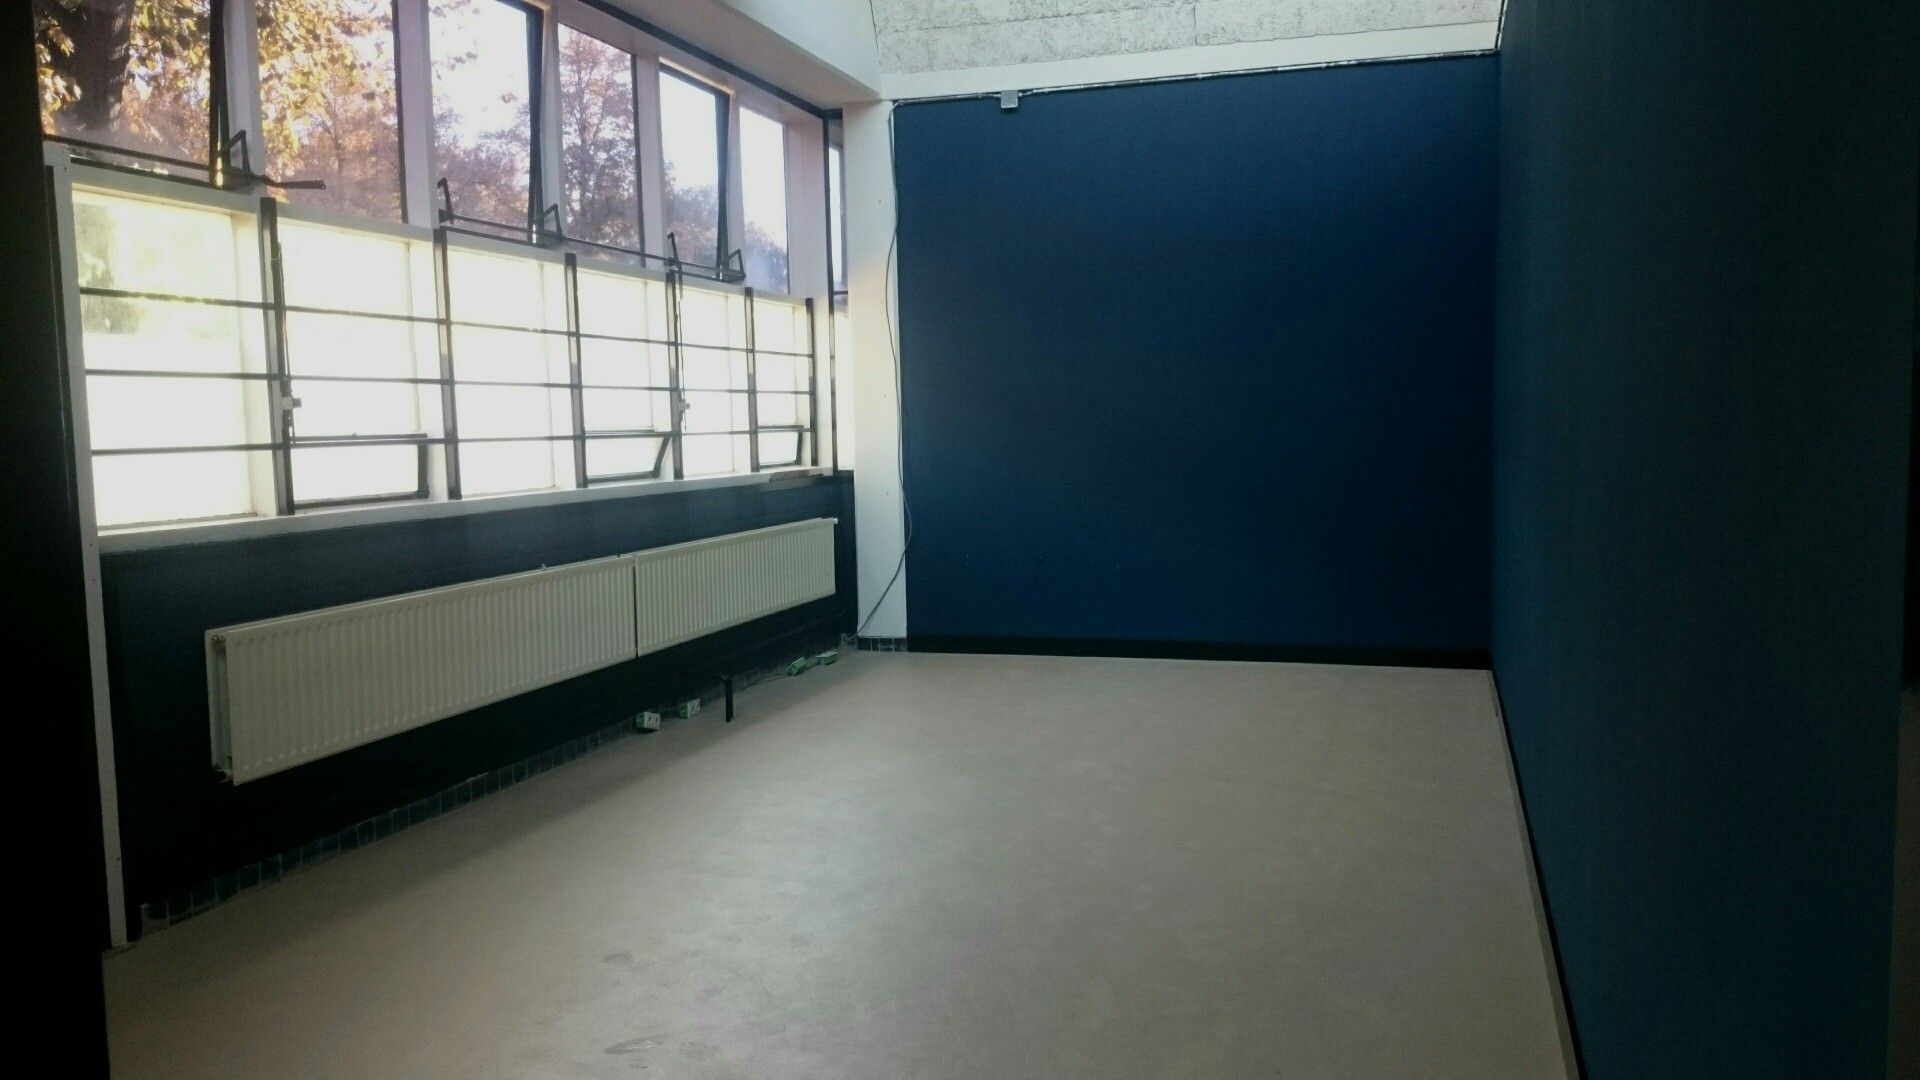 Finally finished all the paint work in our new atelier! Next: furnishing and decorating.   #atelier #espenaer #artisanal #woodworking #ambachtslab